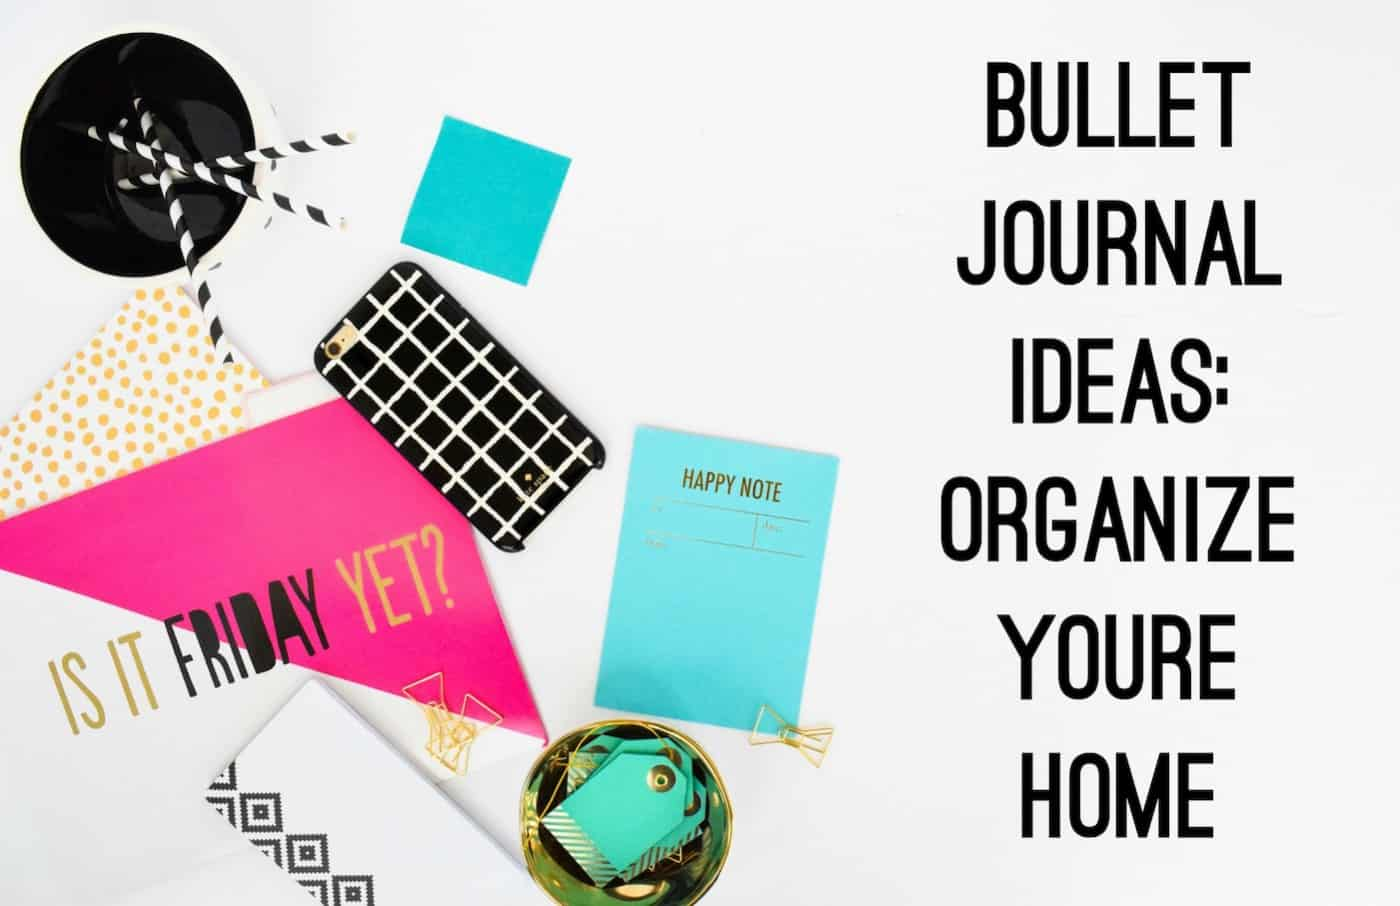 Bullet Journal Ideas Home Organization DIY Candy